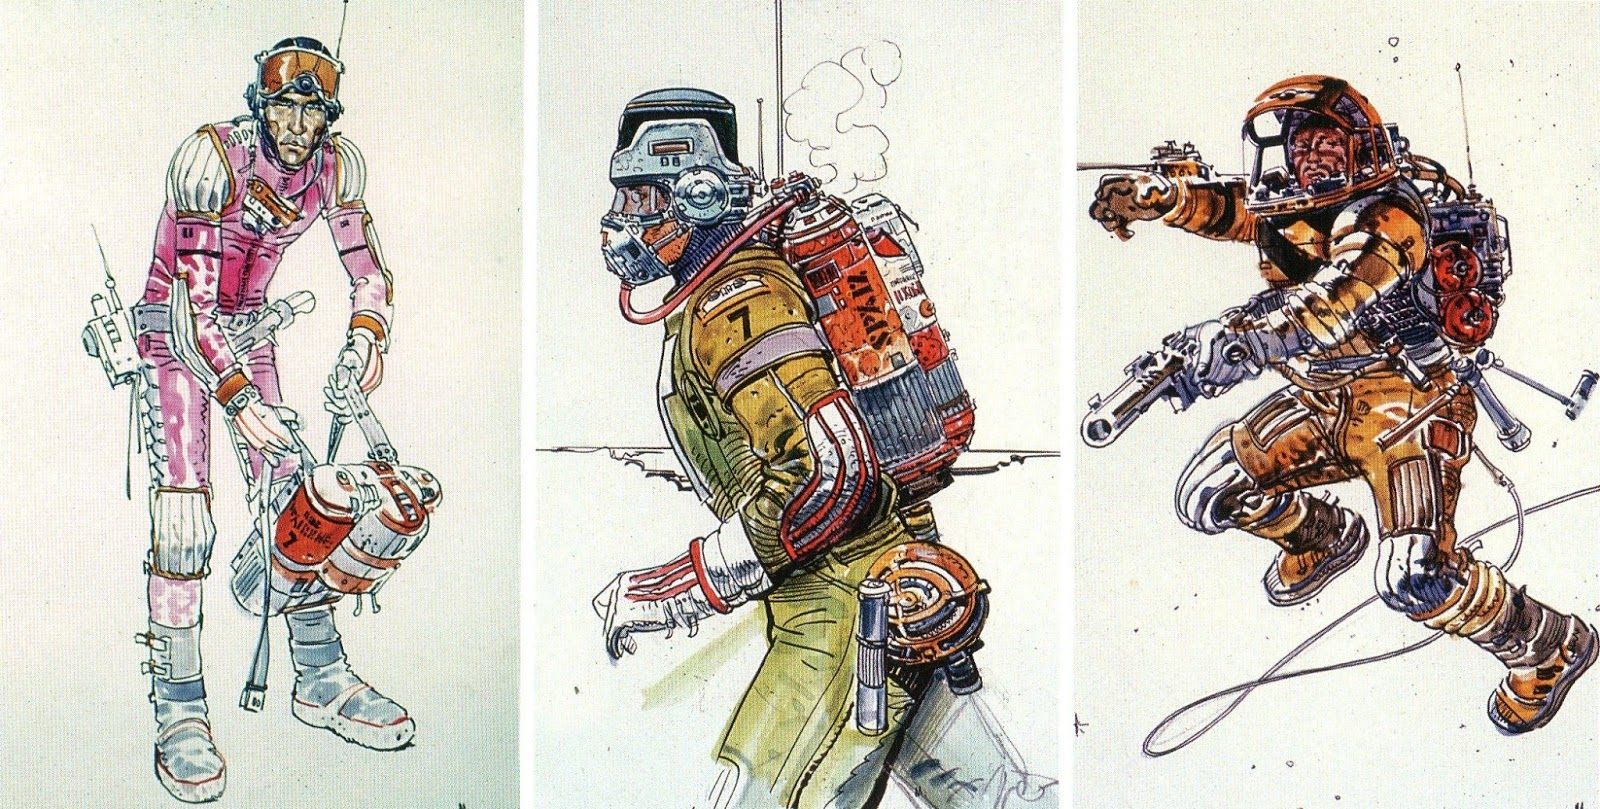 Ridley Scott was greatly inspired by the work of French comic book artist Jean Giraud (a.k.a.Moebius)so he employed the artist to design the costumes for  Alien .